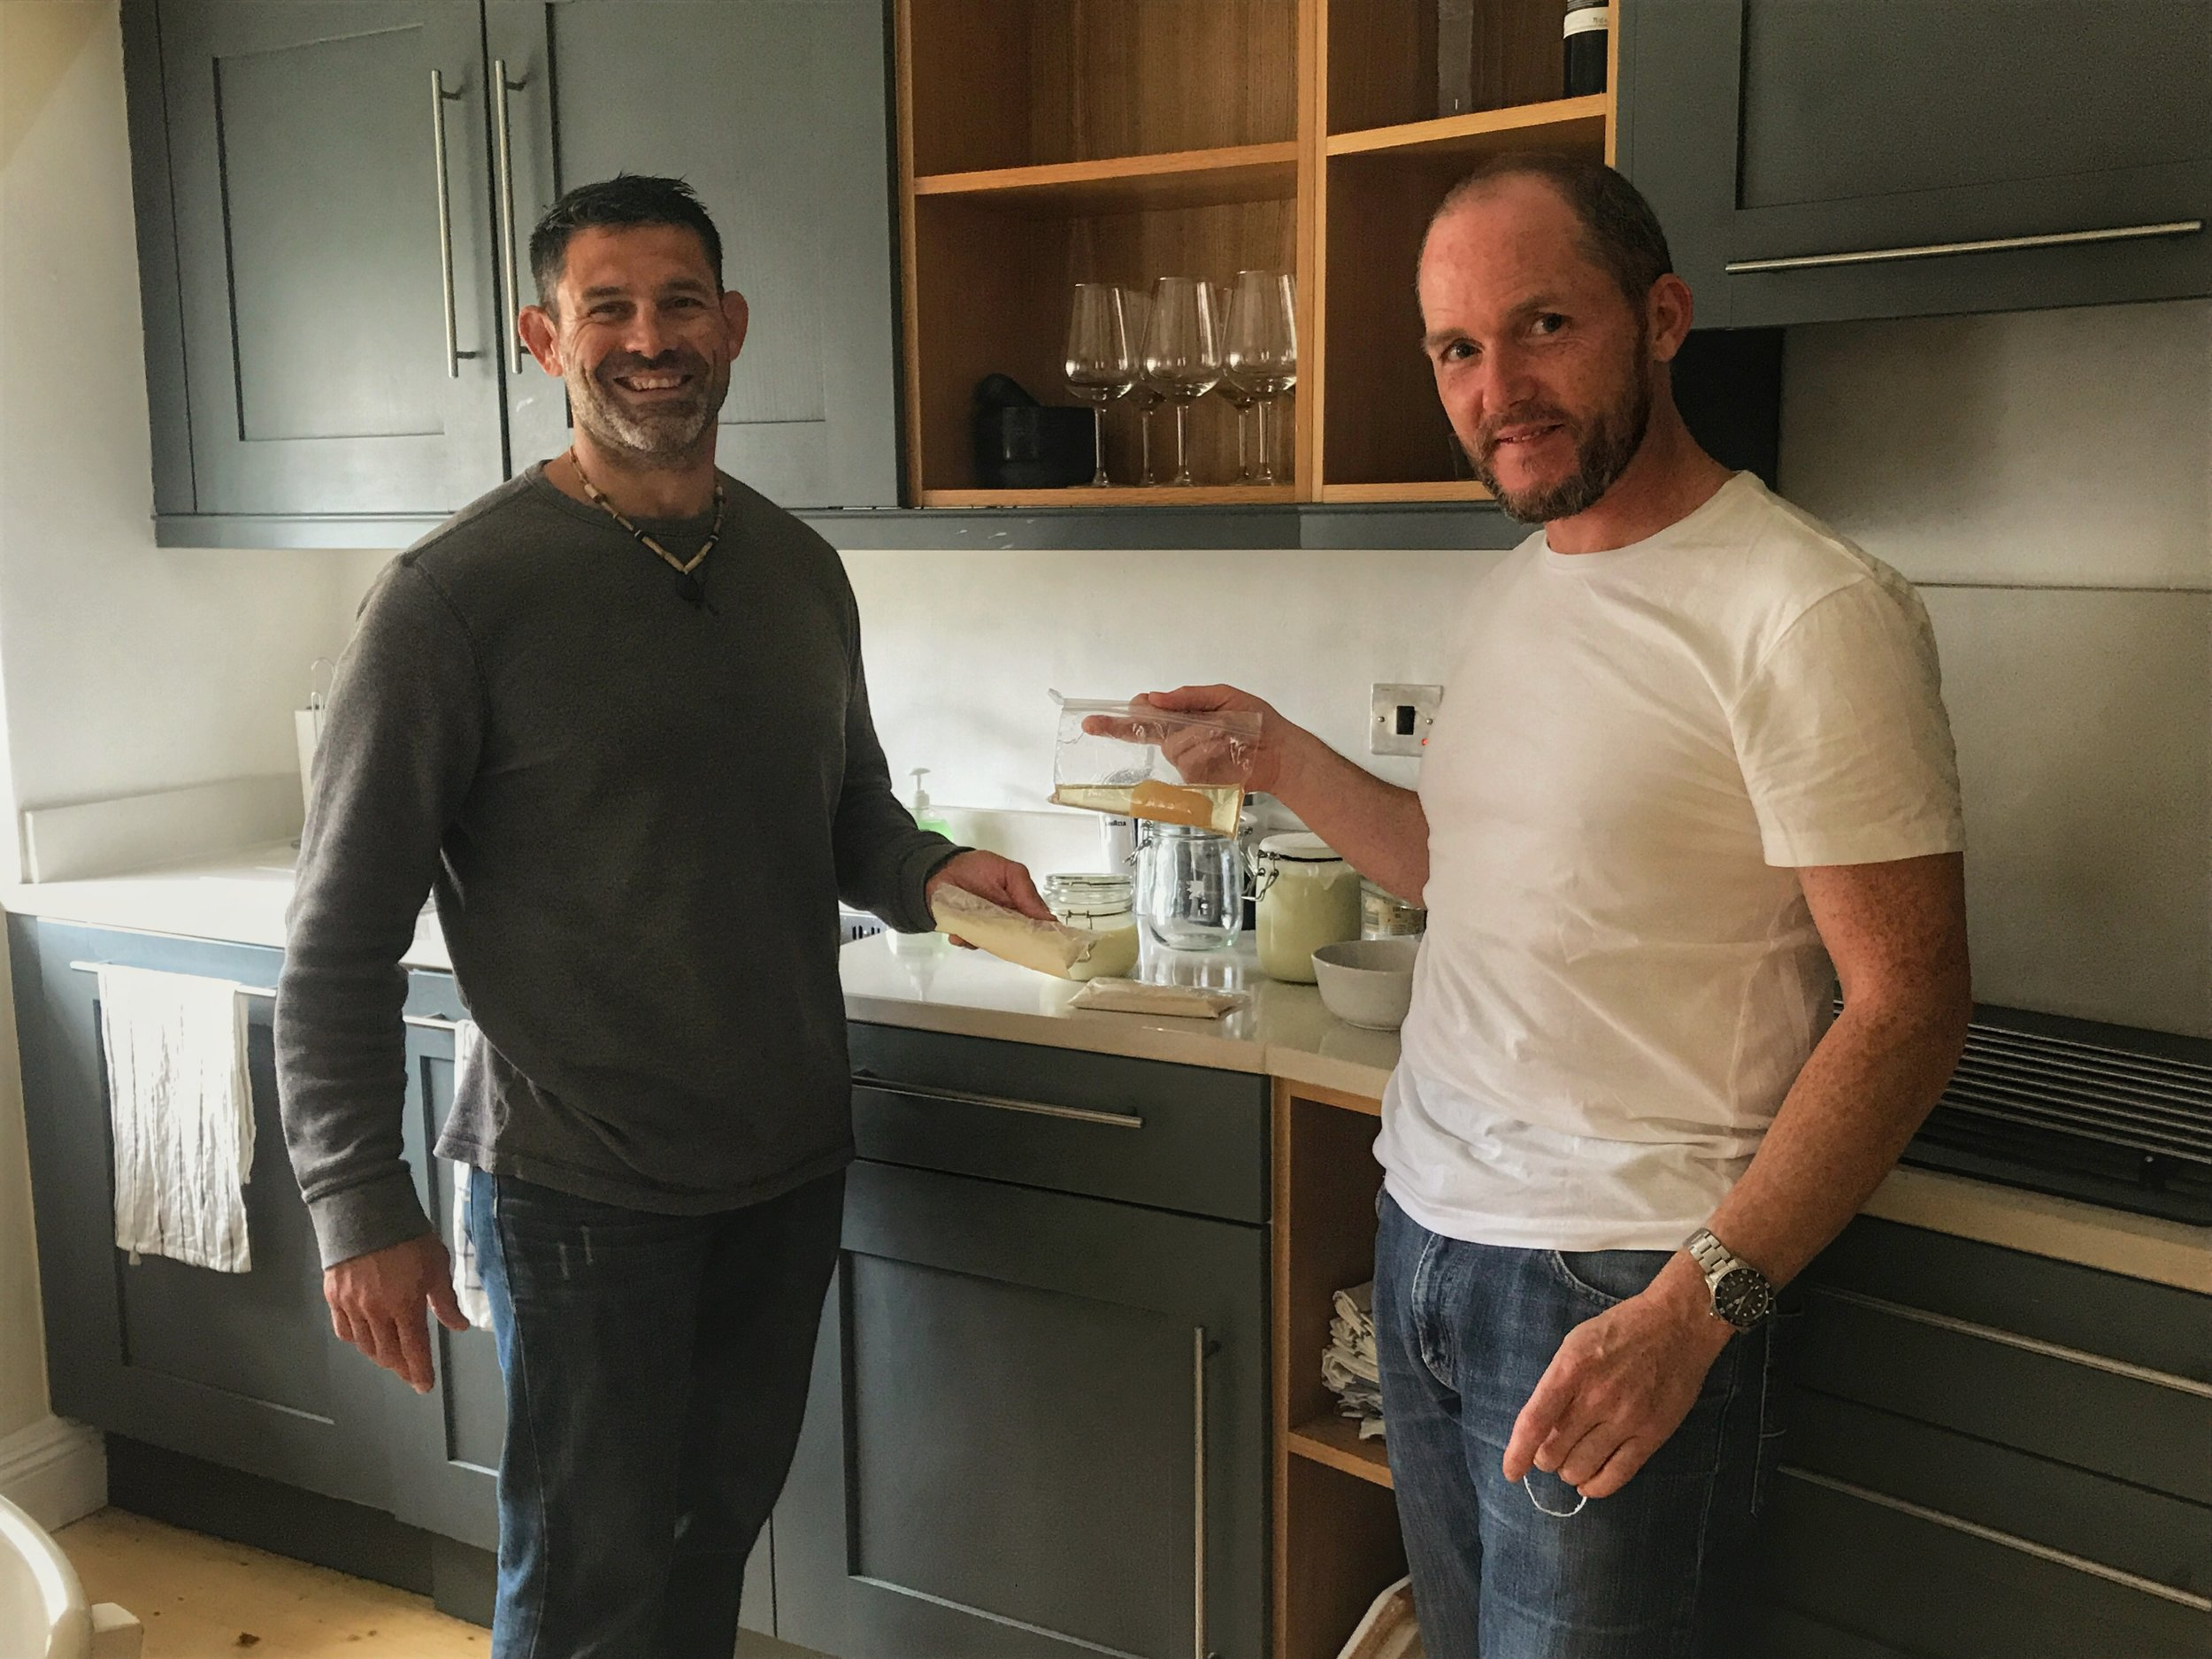 Chef Neil Barrett in my new kitchen at Airfield Estates in Ireland generously sharing his cultures. He is holding jun, a kombucha that feeds off of honey instead of sugar - I can't wait!